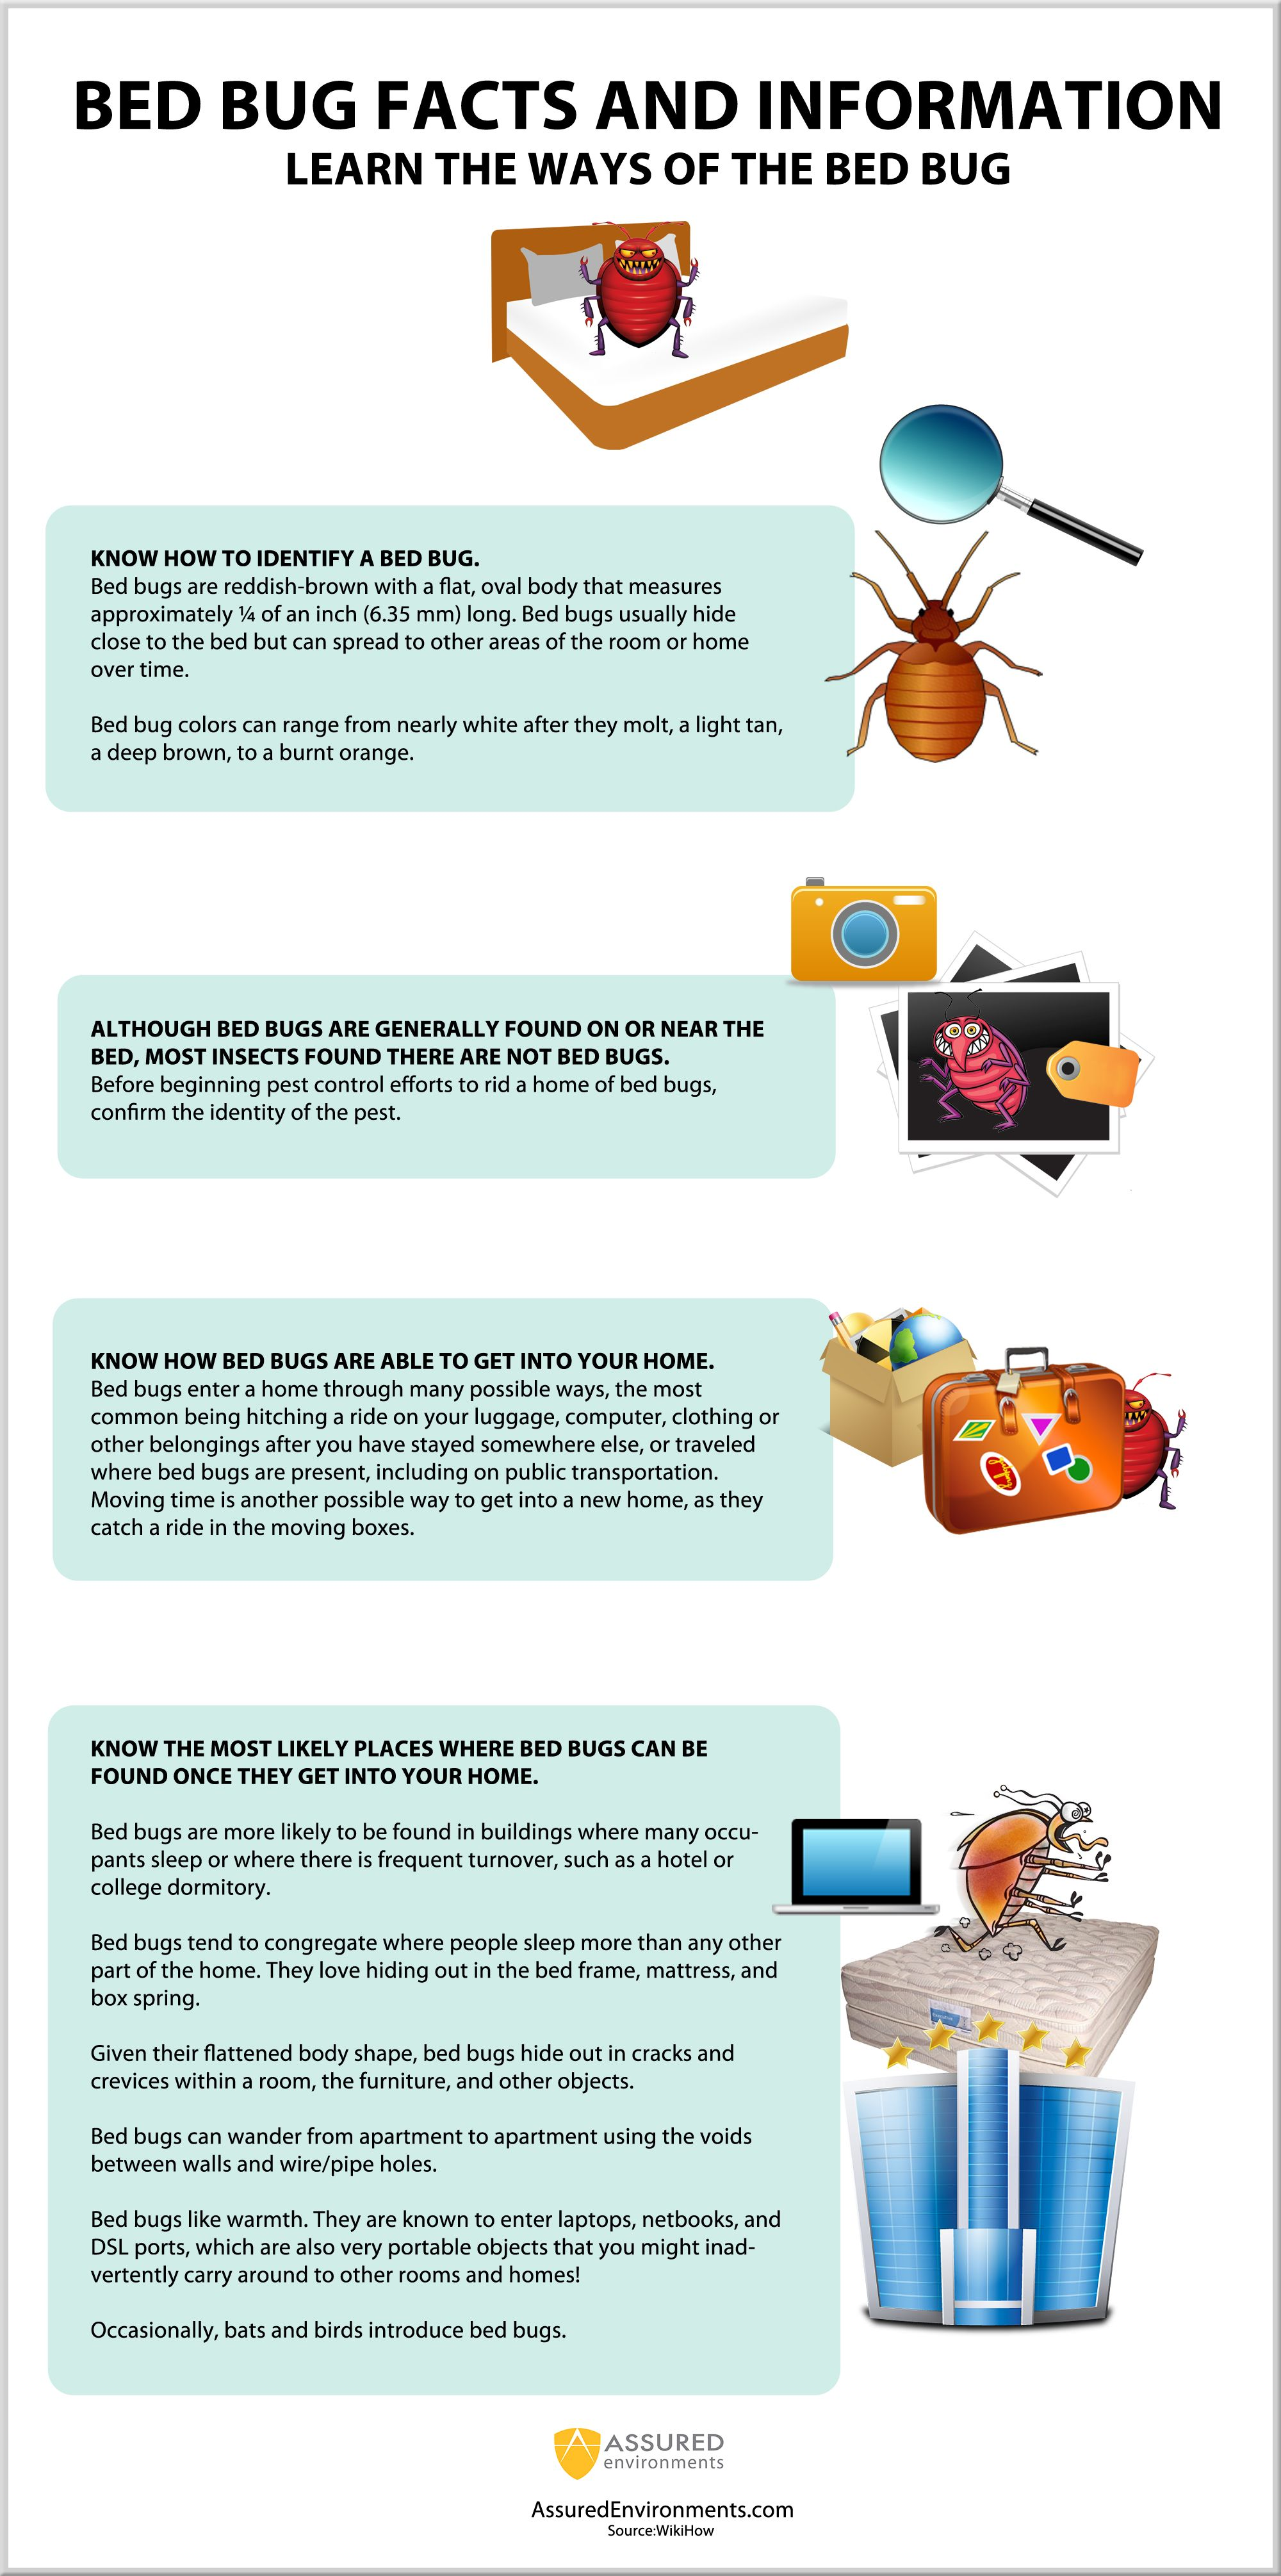 web epidemic myths baby bugs sucked blood protect after the or and blog skin bedbug about bed cimex yourself bug facts from